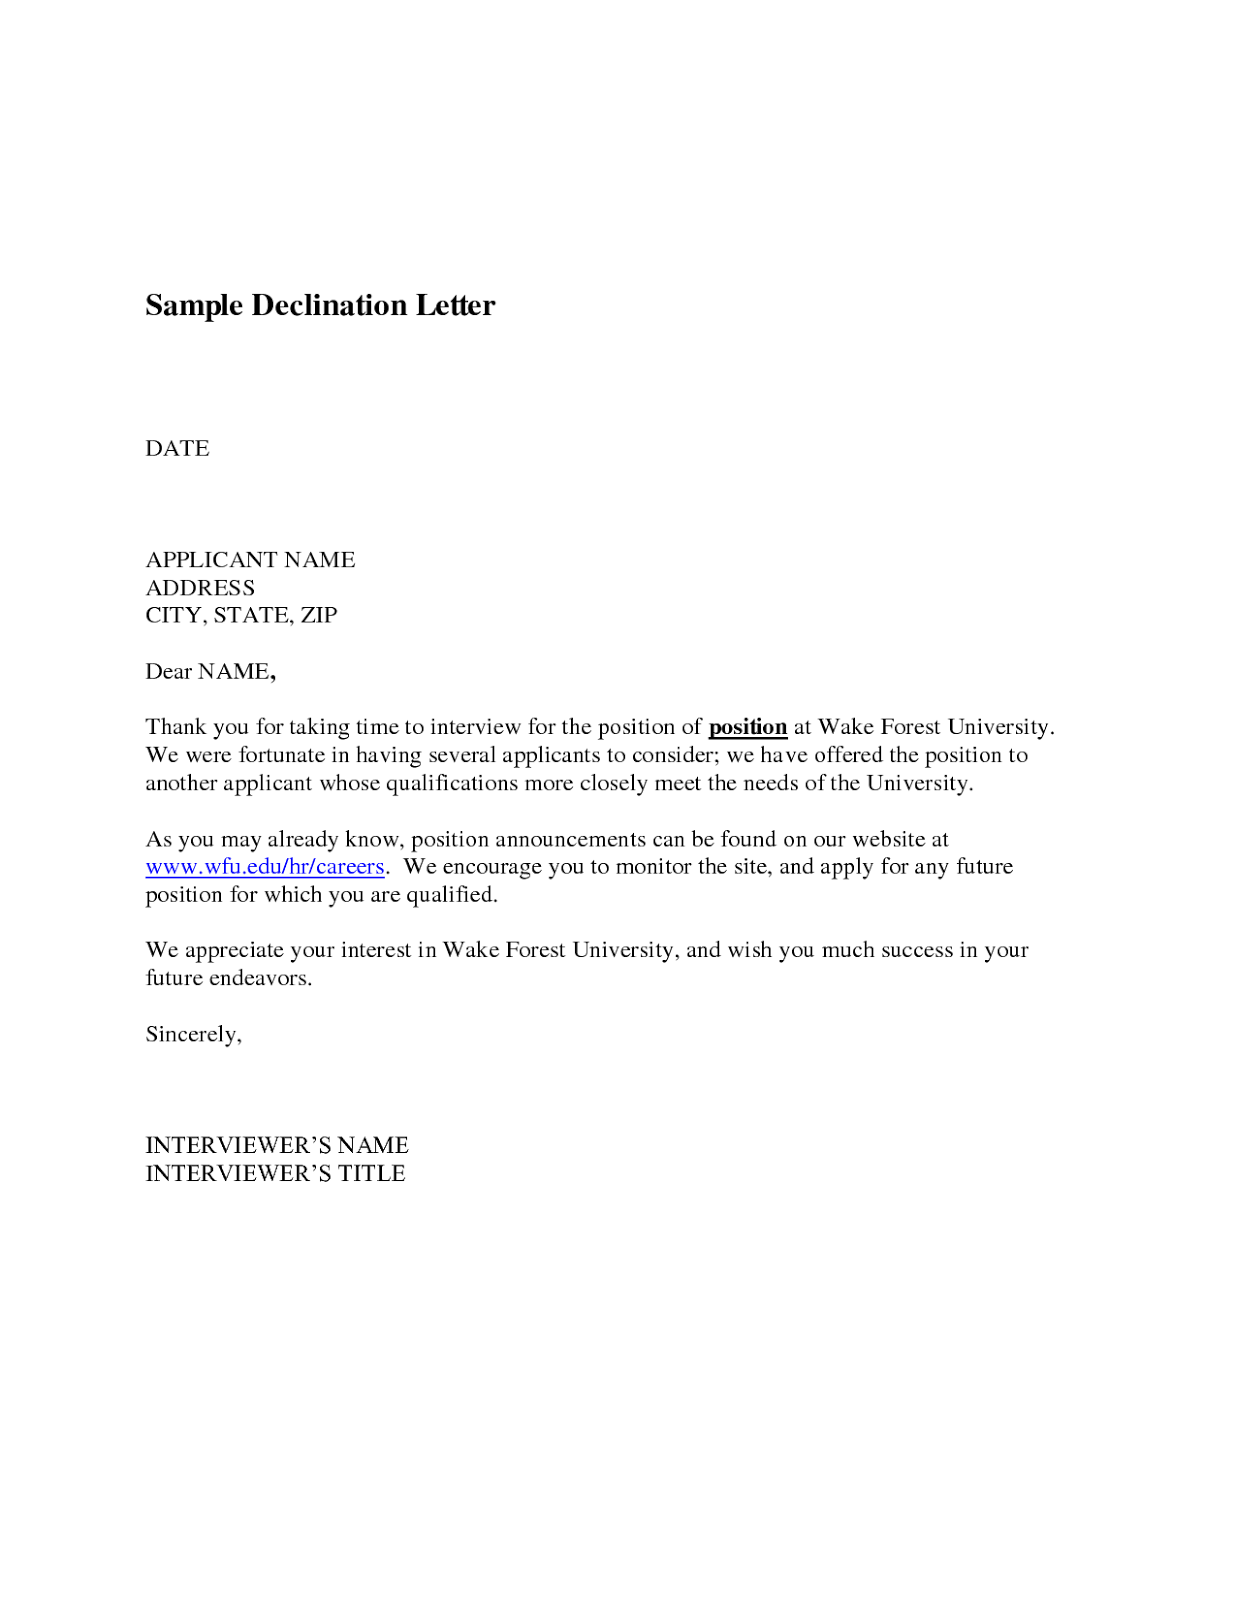 sample cover letter for online posting sample war sample cover letter for online posting basic sample cover letter sample cover letters for resume